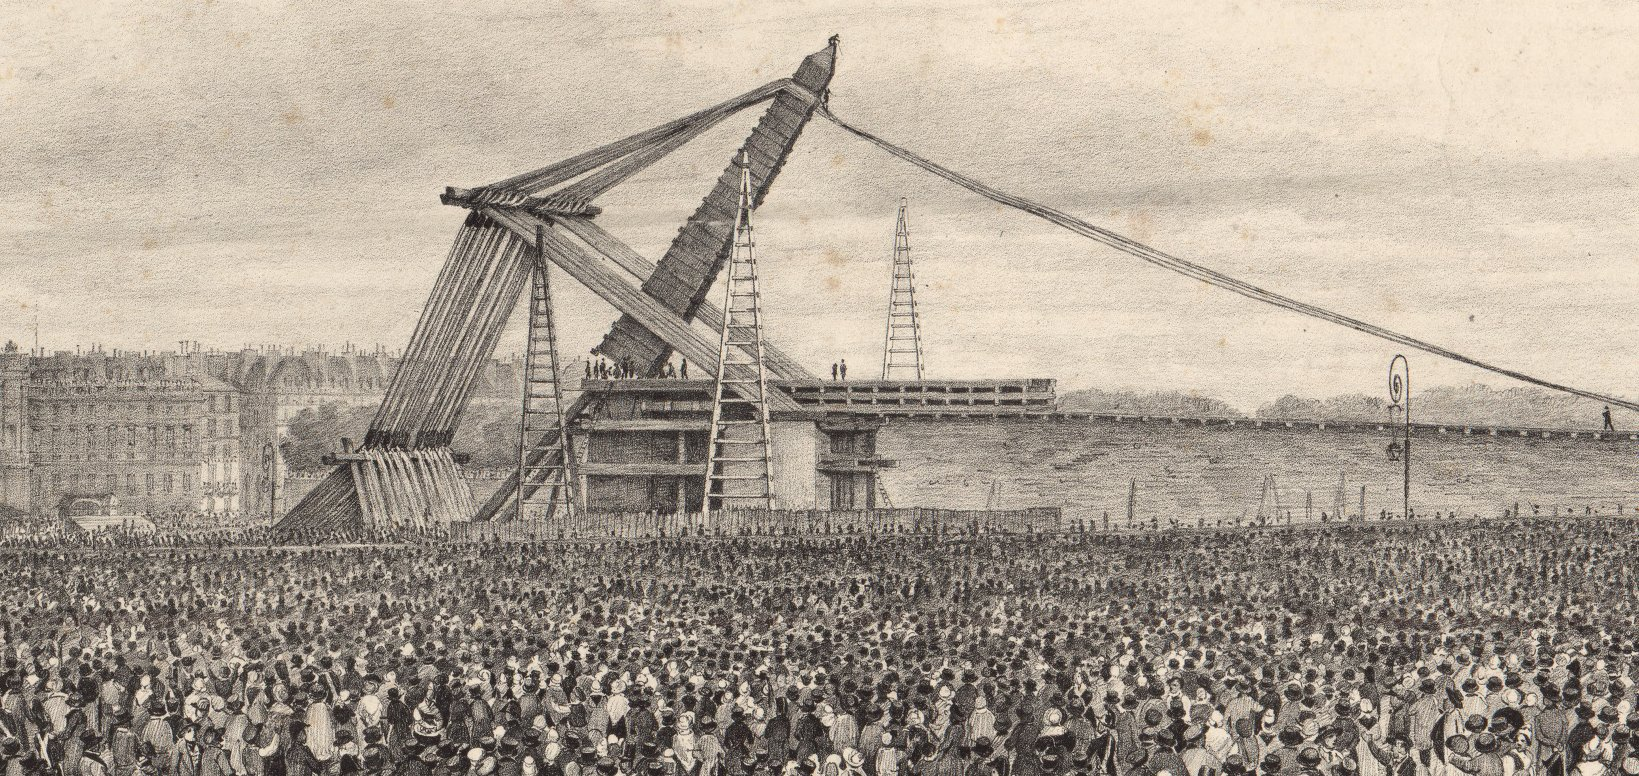 Théodore Jung, Erection de l'Obélisque du Luxor, Le 25 octobre 1836, lithographie, BnF/Gallica